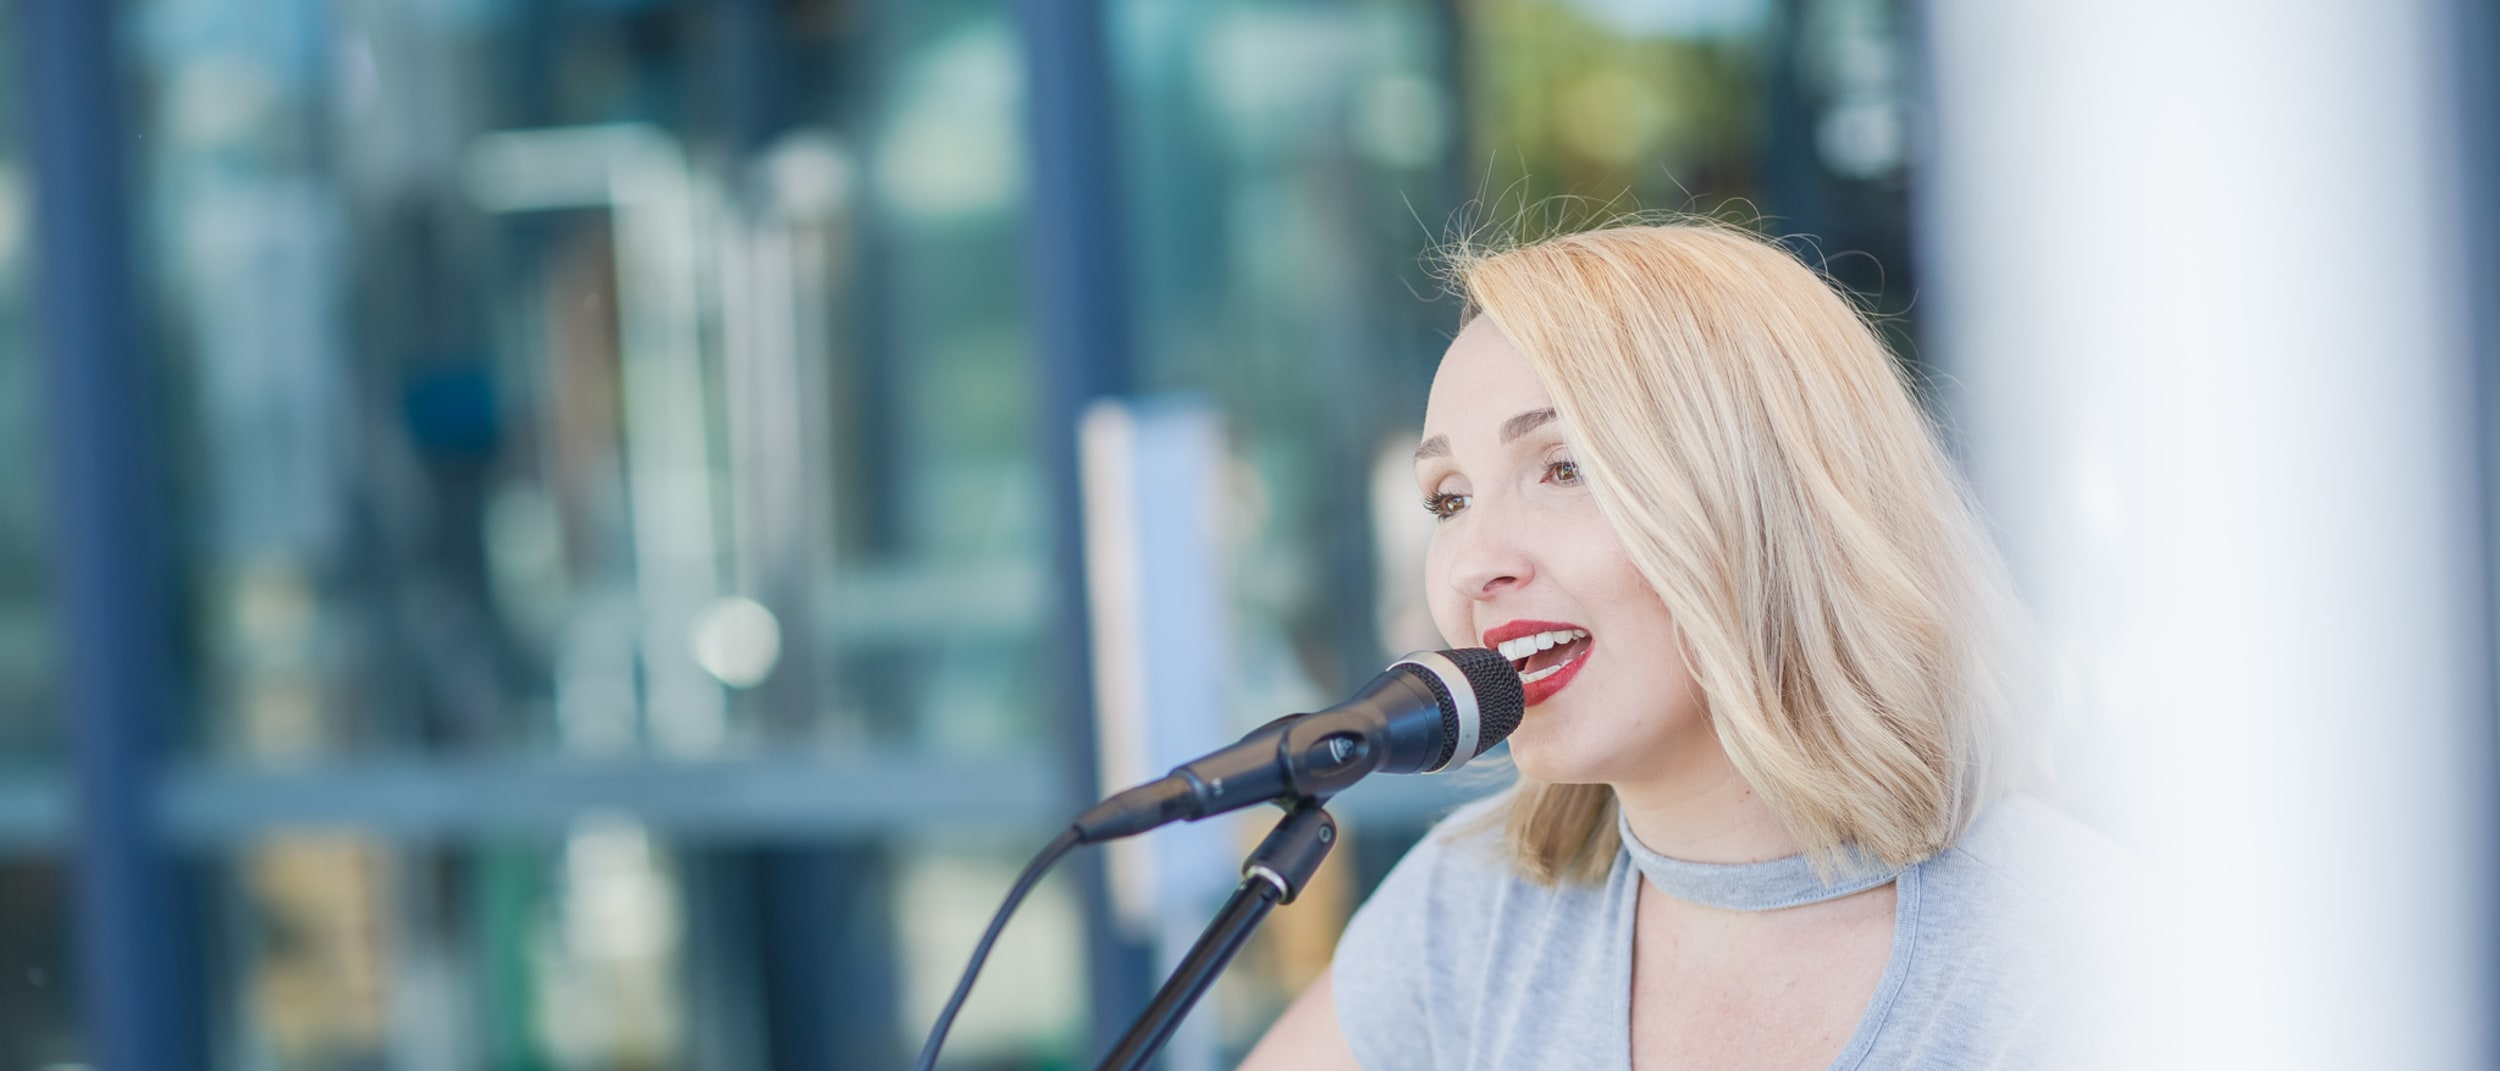 Live Music in The Glasshouse